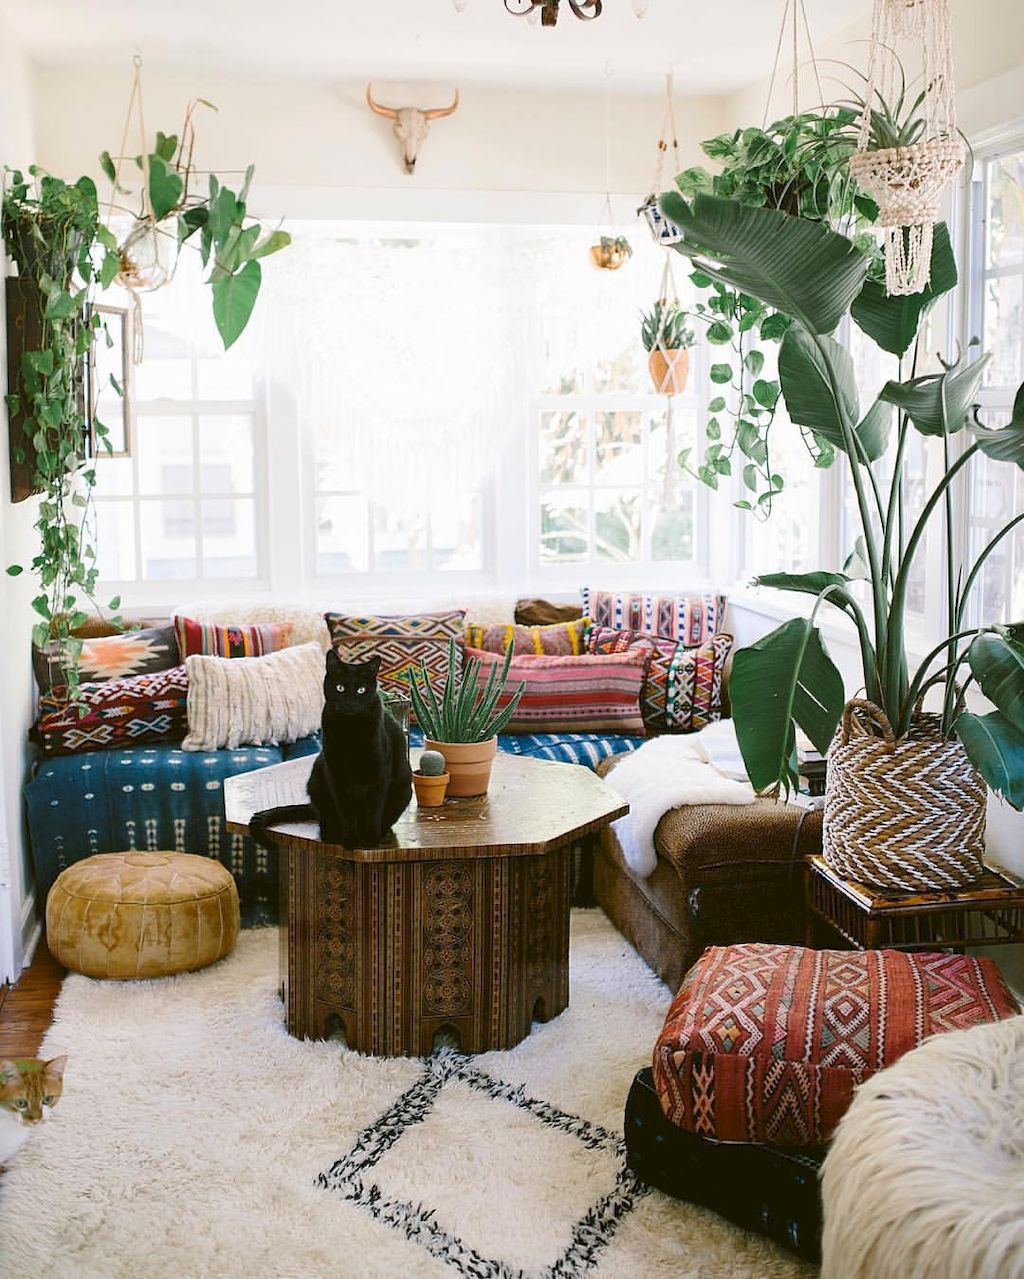 Romantic bohemian style living room design ideas (49 | Pinterest